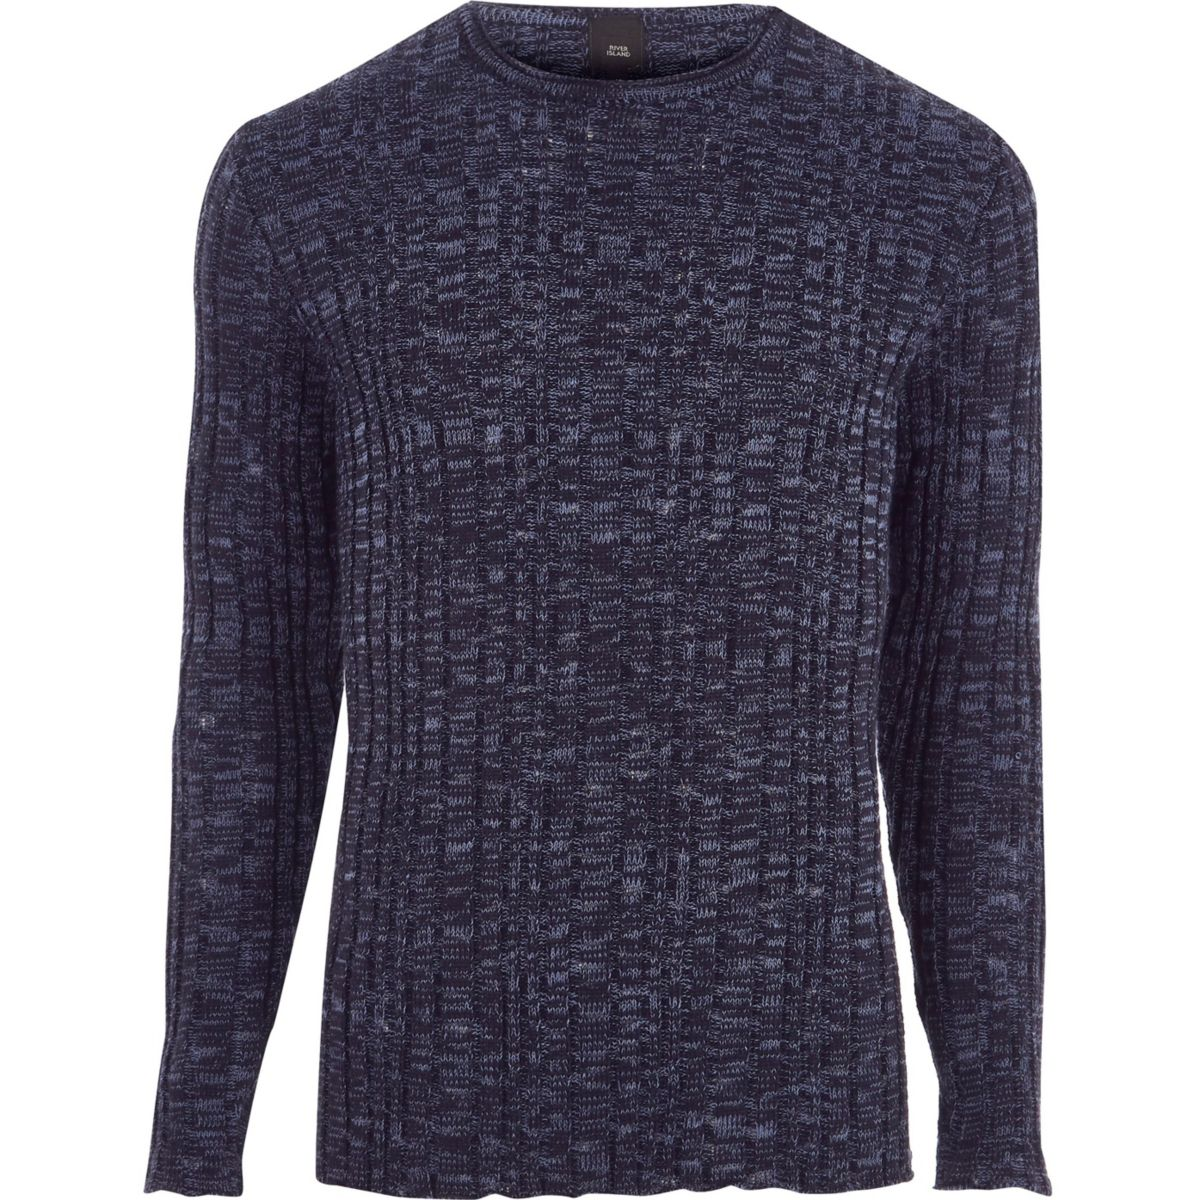 Big and Tall navy ribbed sweater